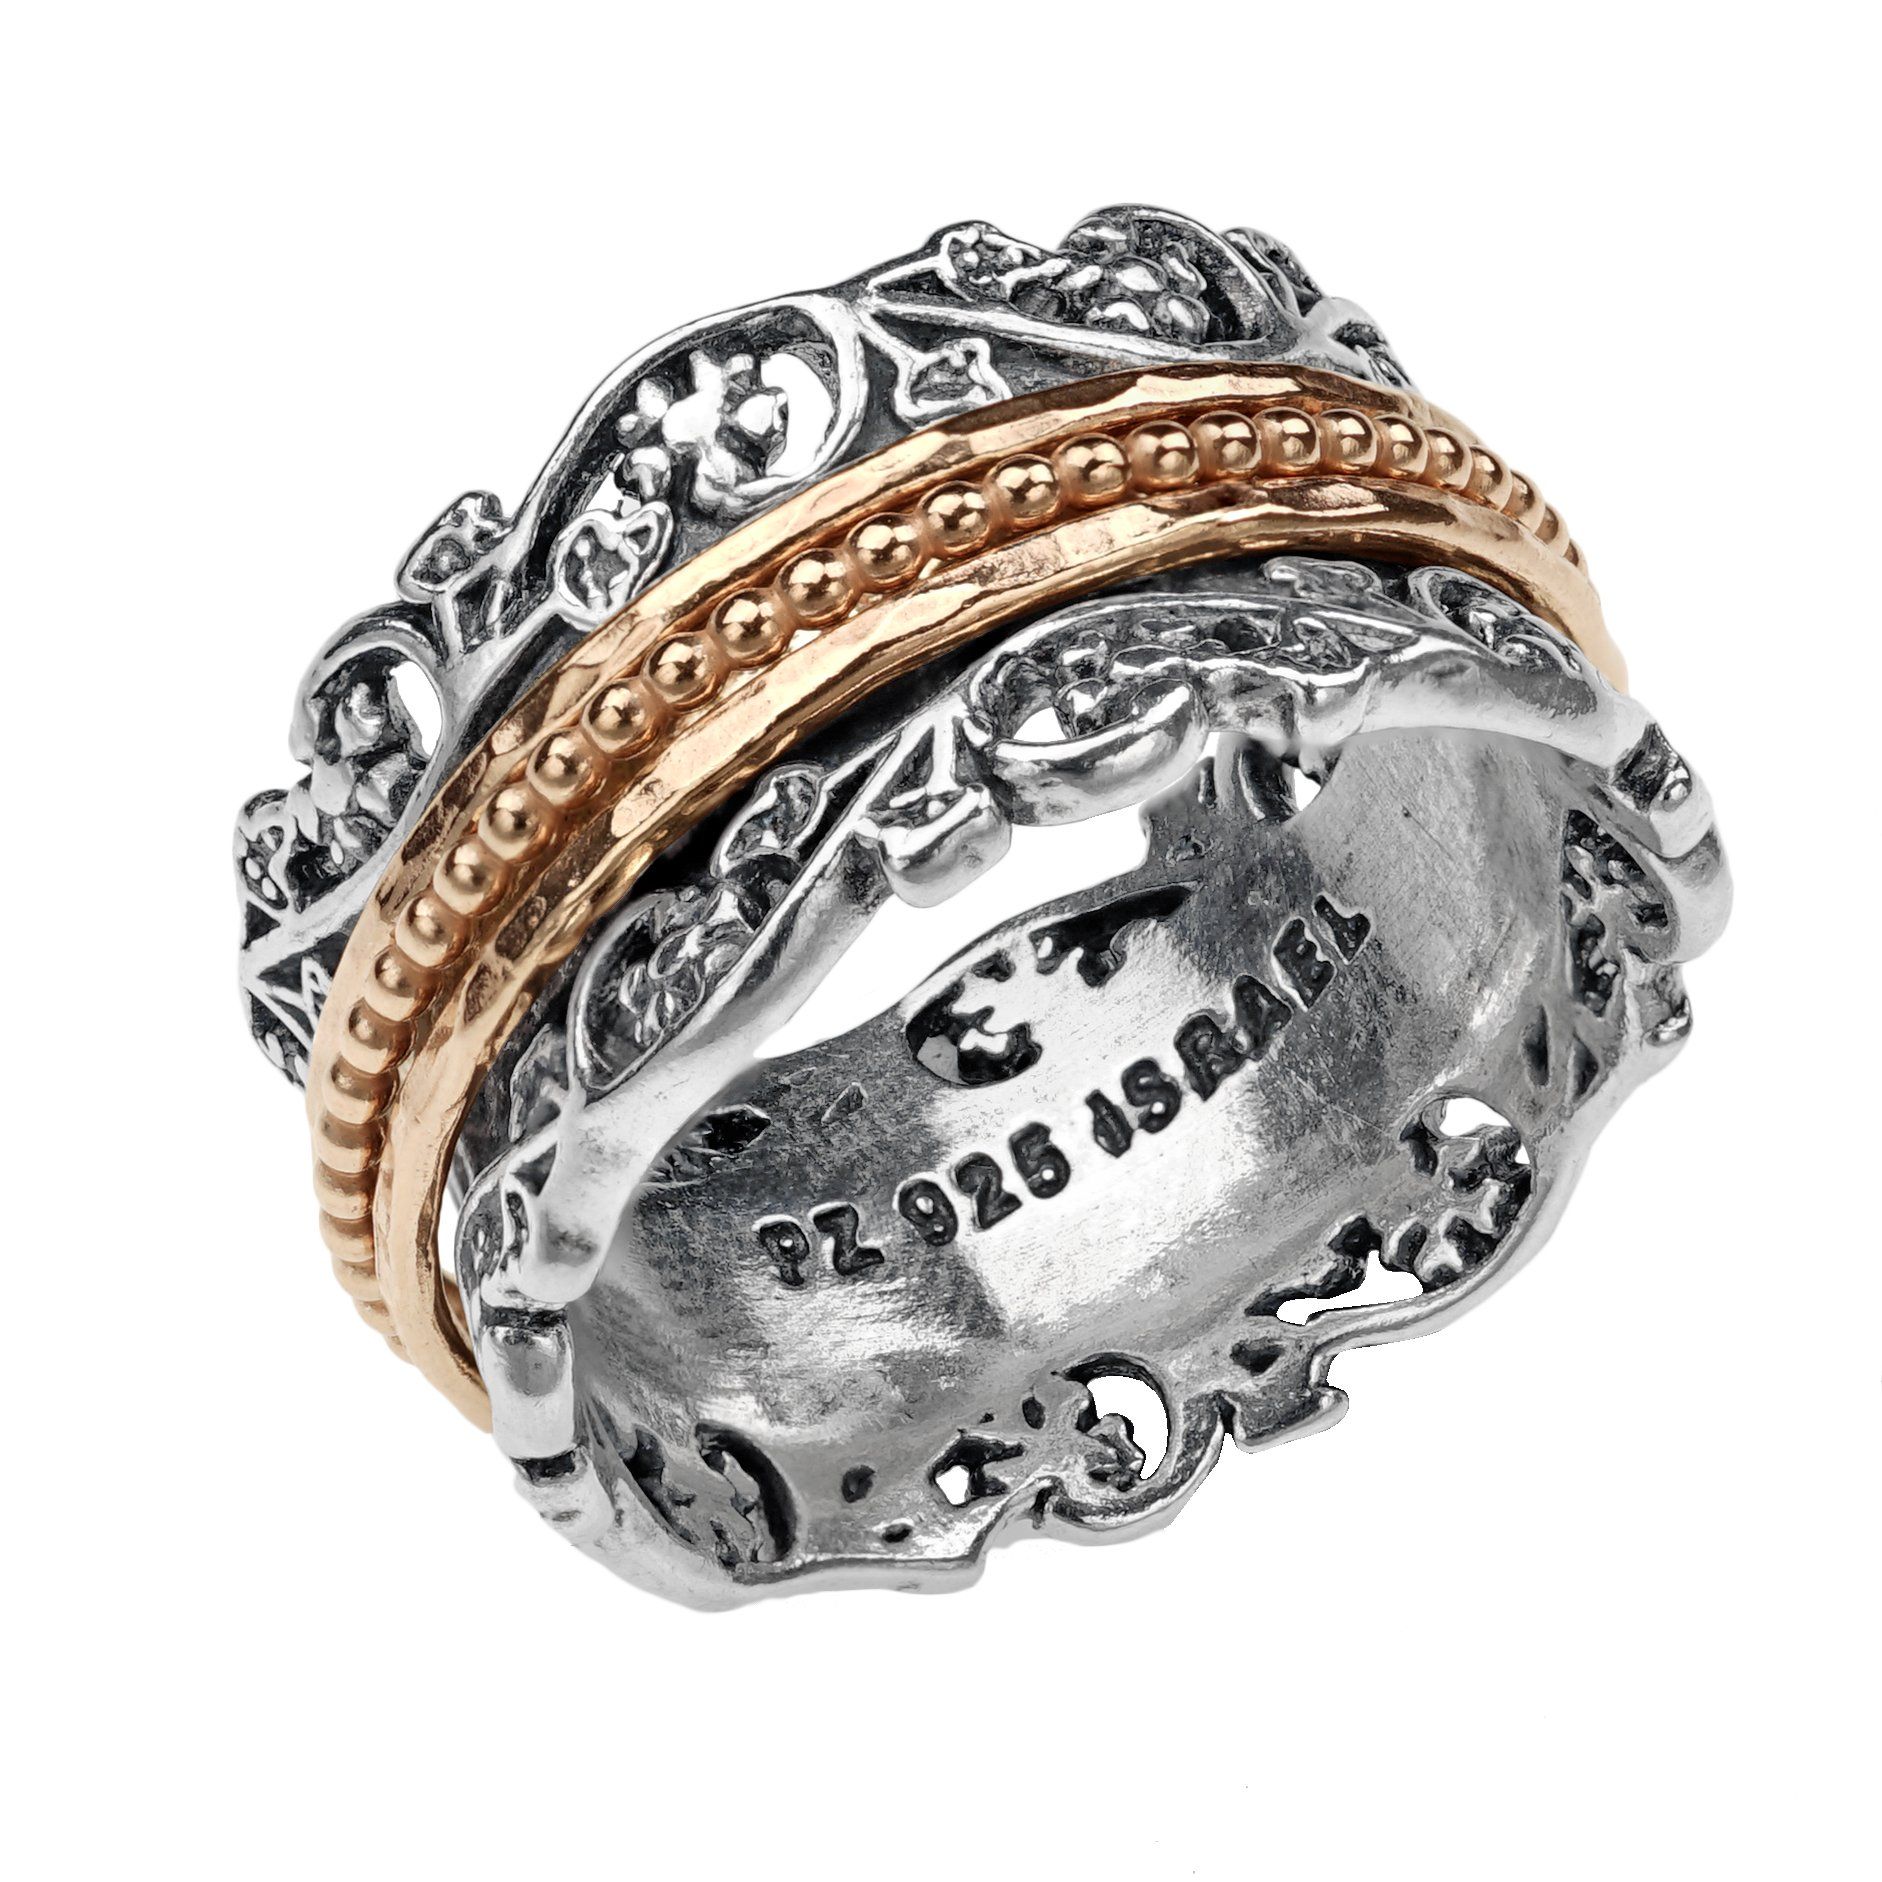 Paz Creations .925 Sterling Silver and Rose Gold over Silver Spinner Ring (8), Made in Israel